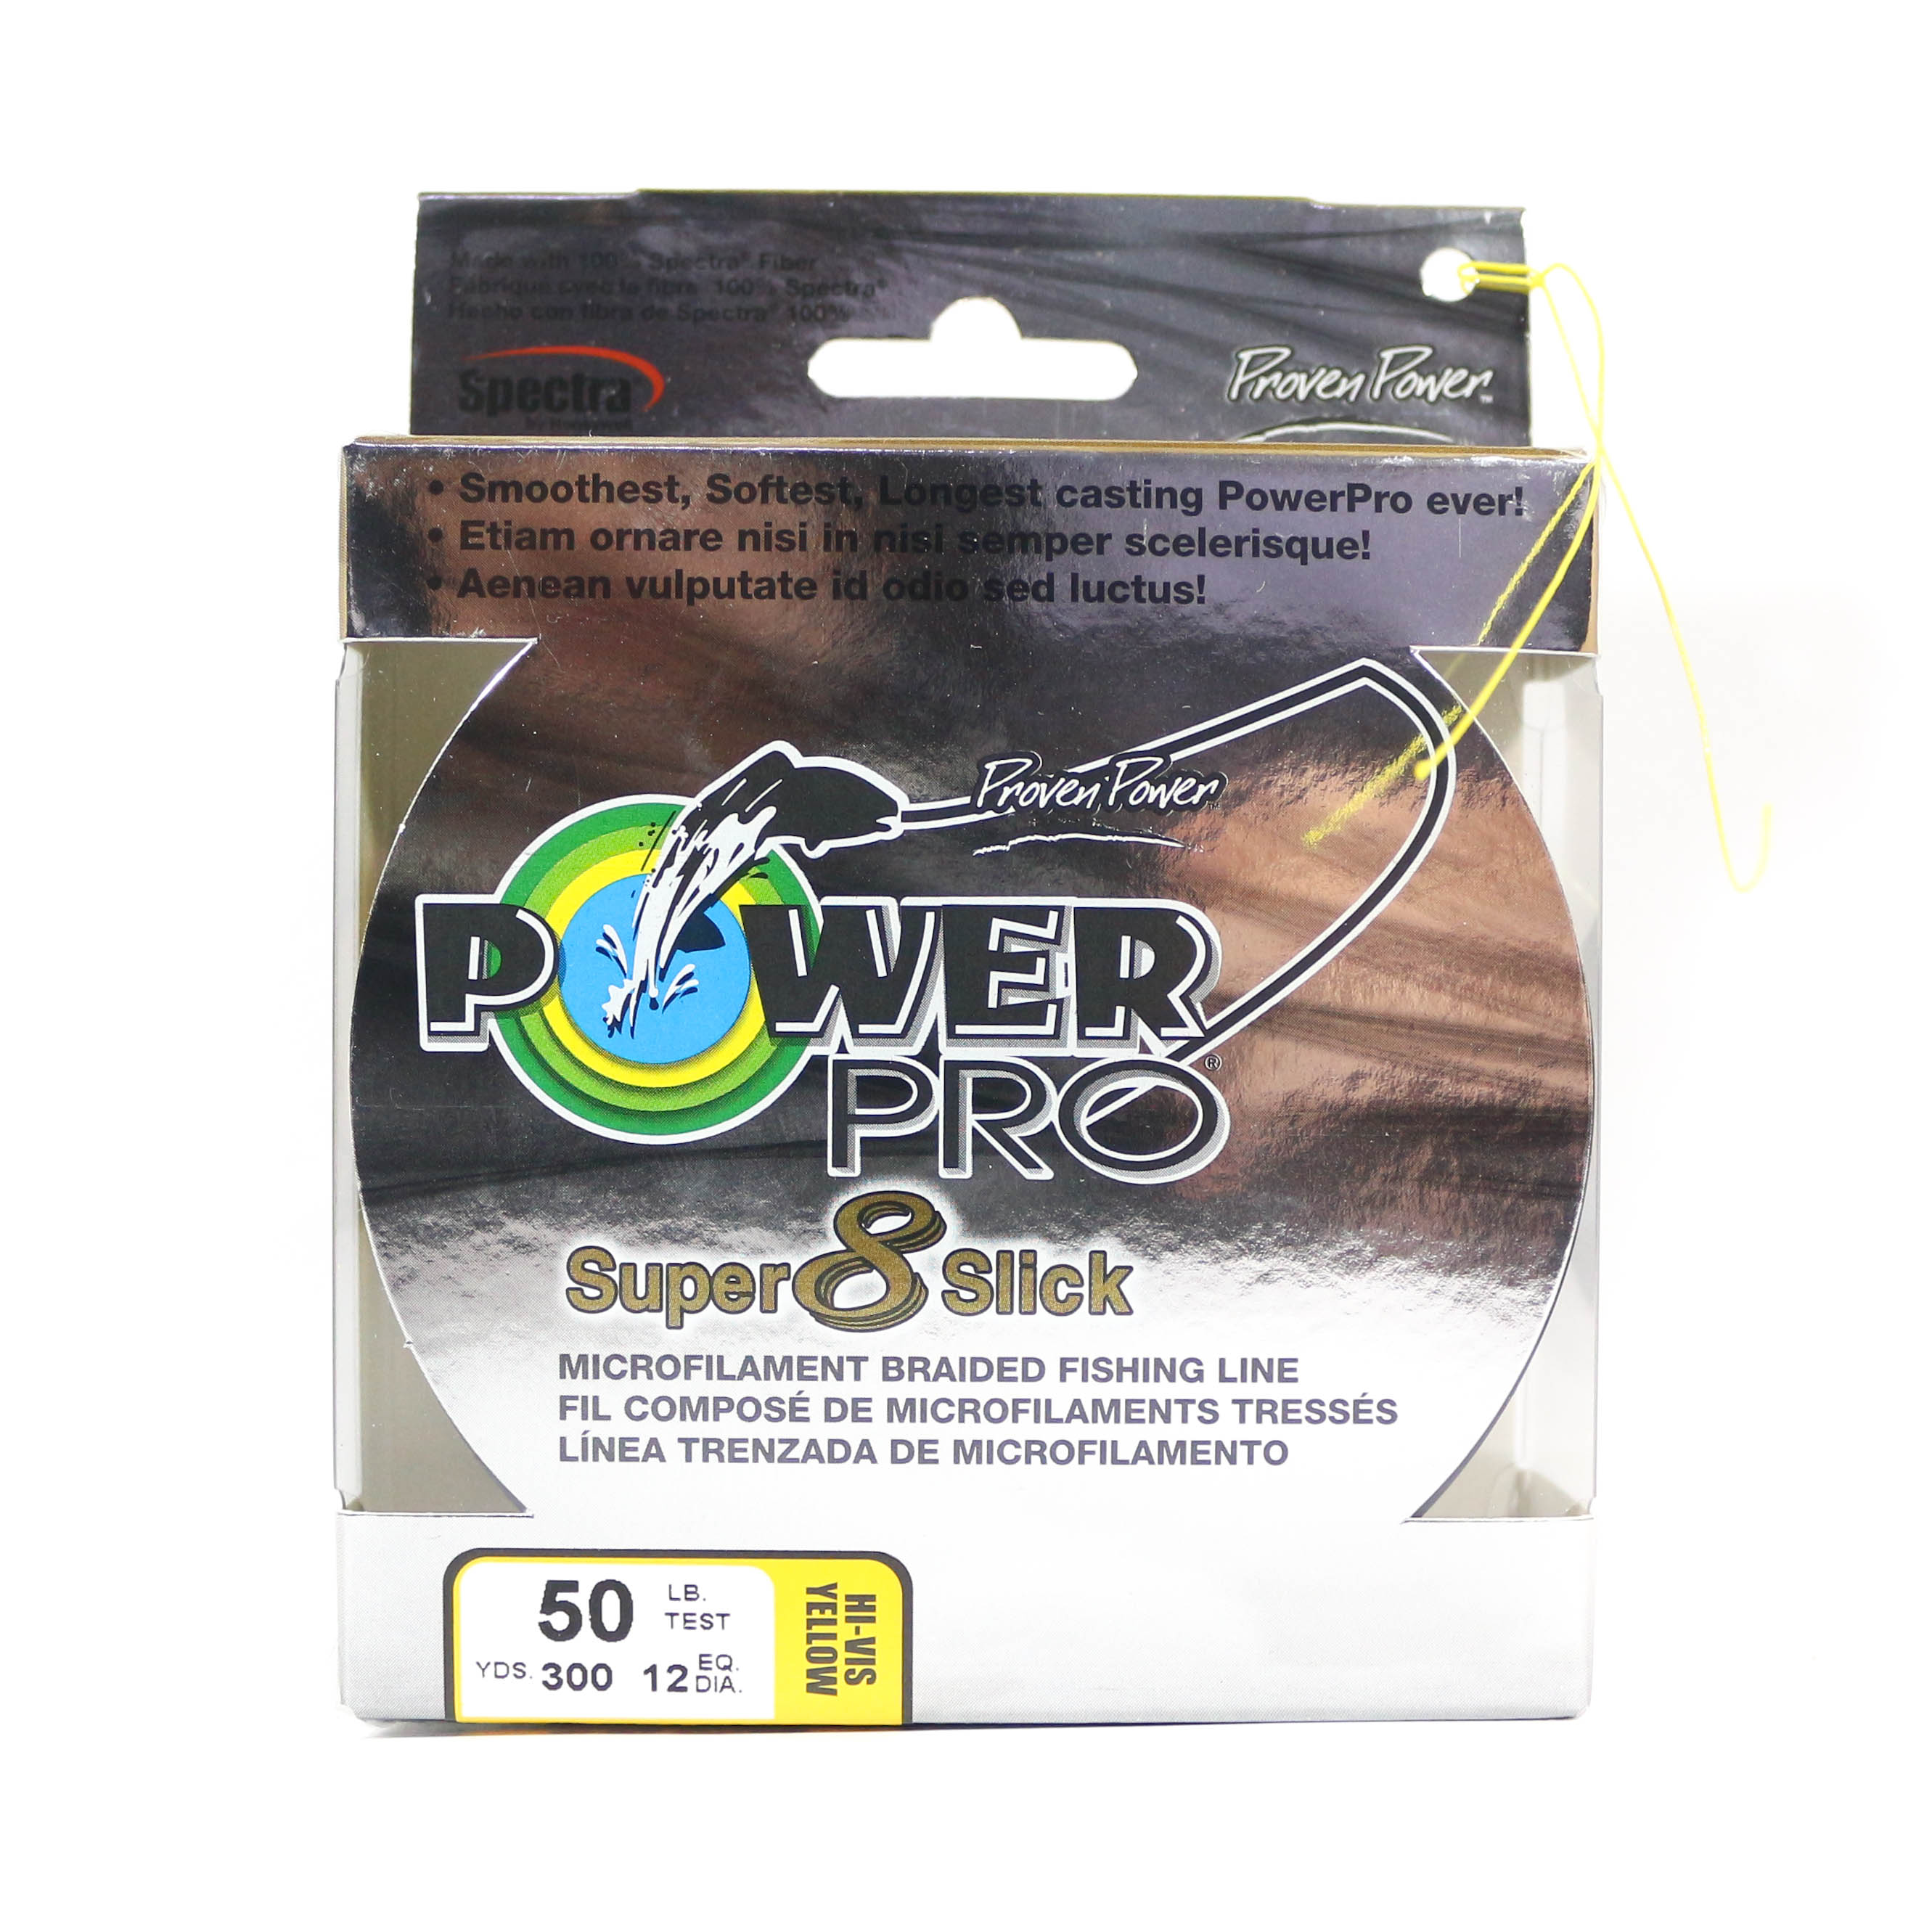 Power Pro Super 8 Slick Spectra Line 50lb by 300yds Yellow (0022)